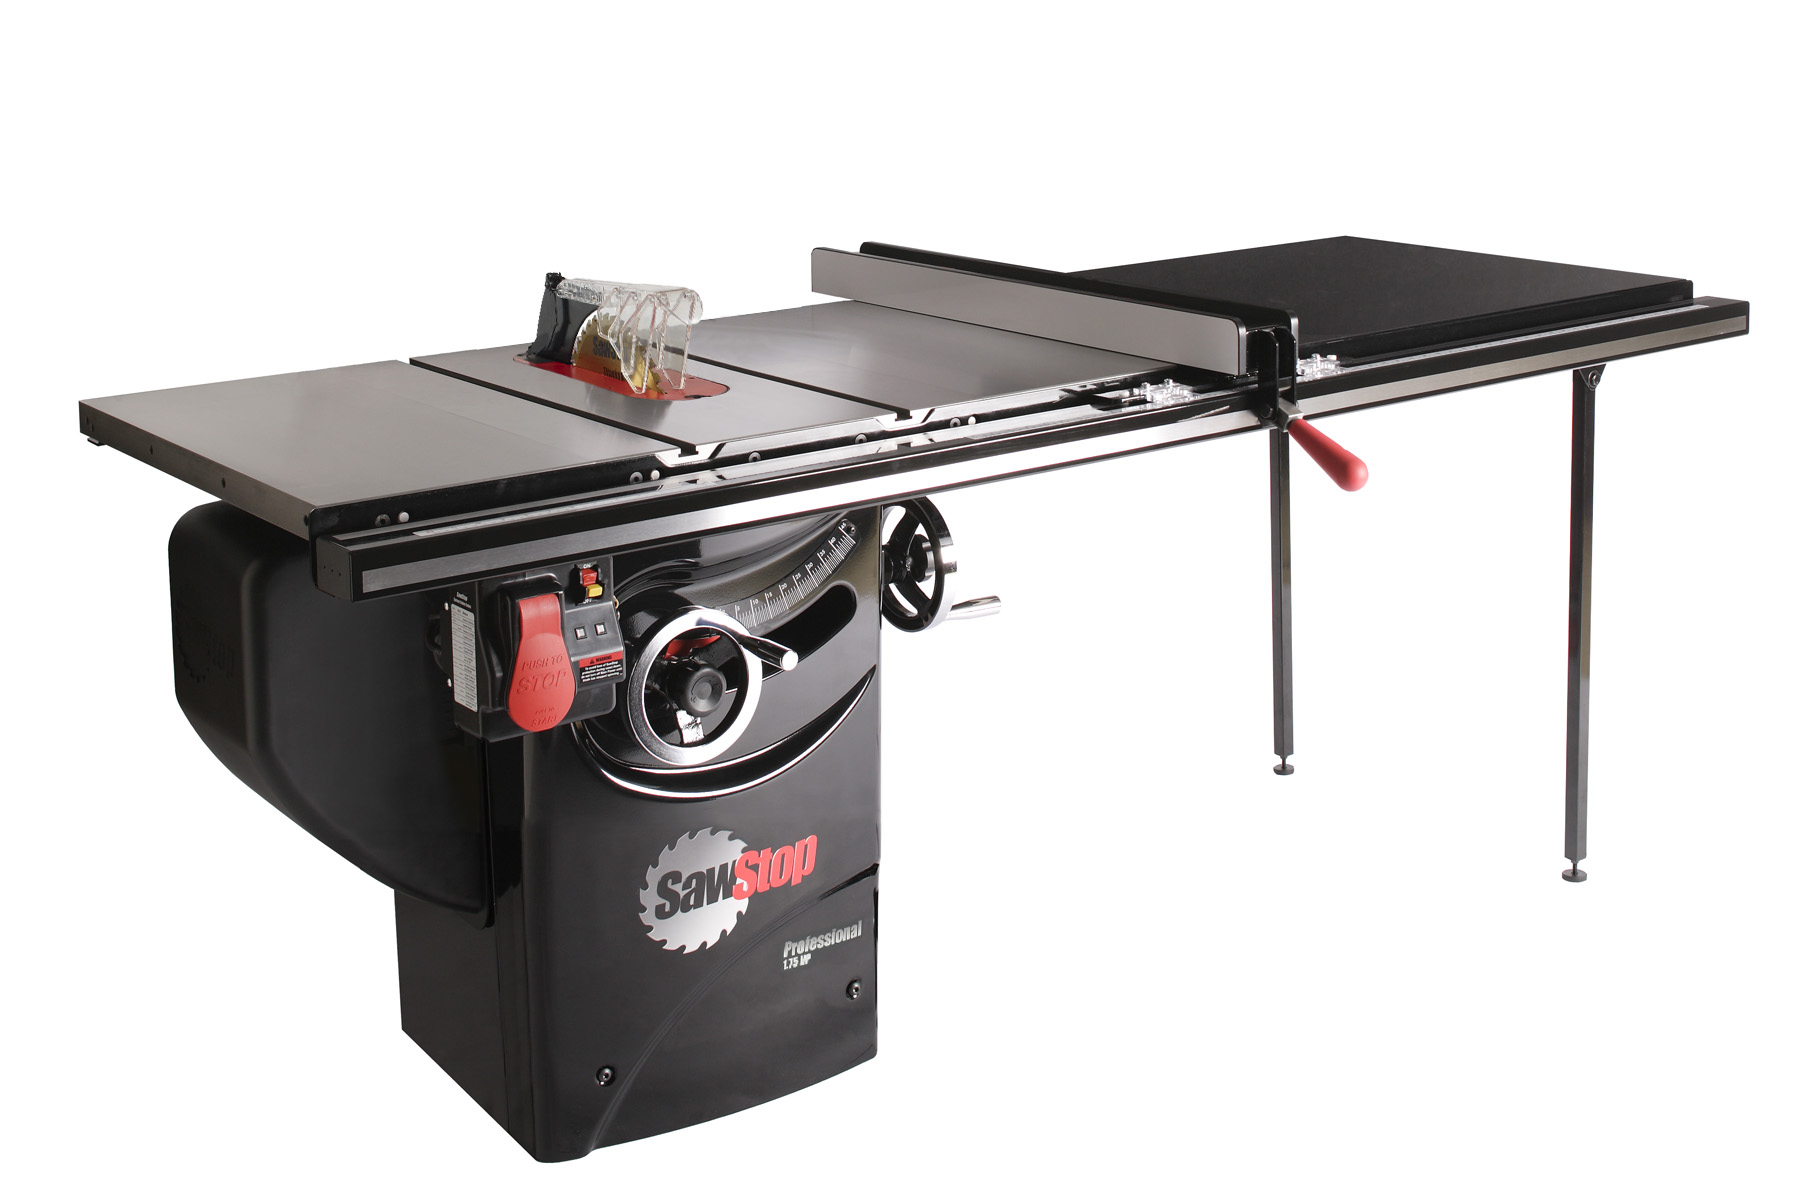 Sawstop 175 hp professional table saw w52 fence rails and sawstop 175 hp professional table saw w52 fence rails and extension table pcs175 tgp252 rockler woodworking and hardware keyboard keysfo Choice Image